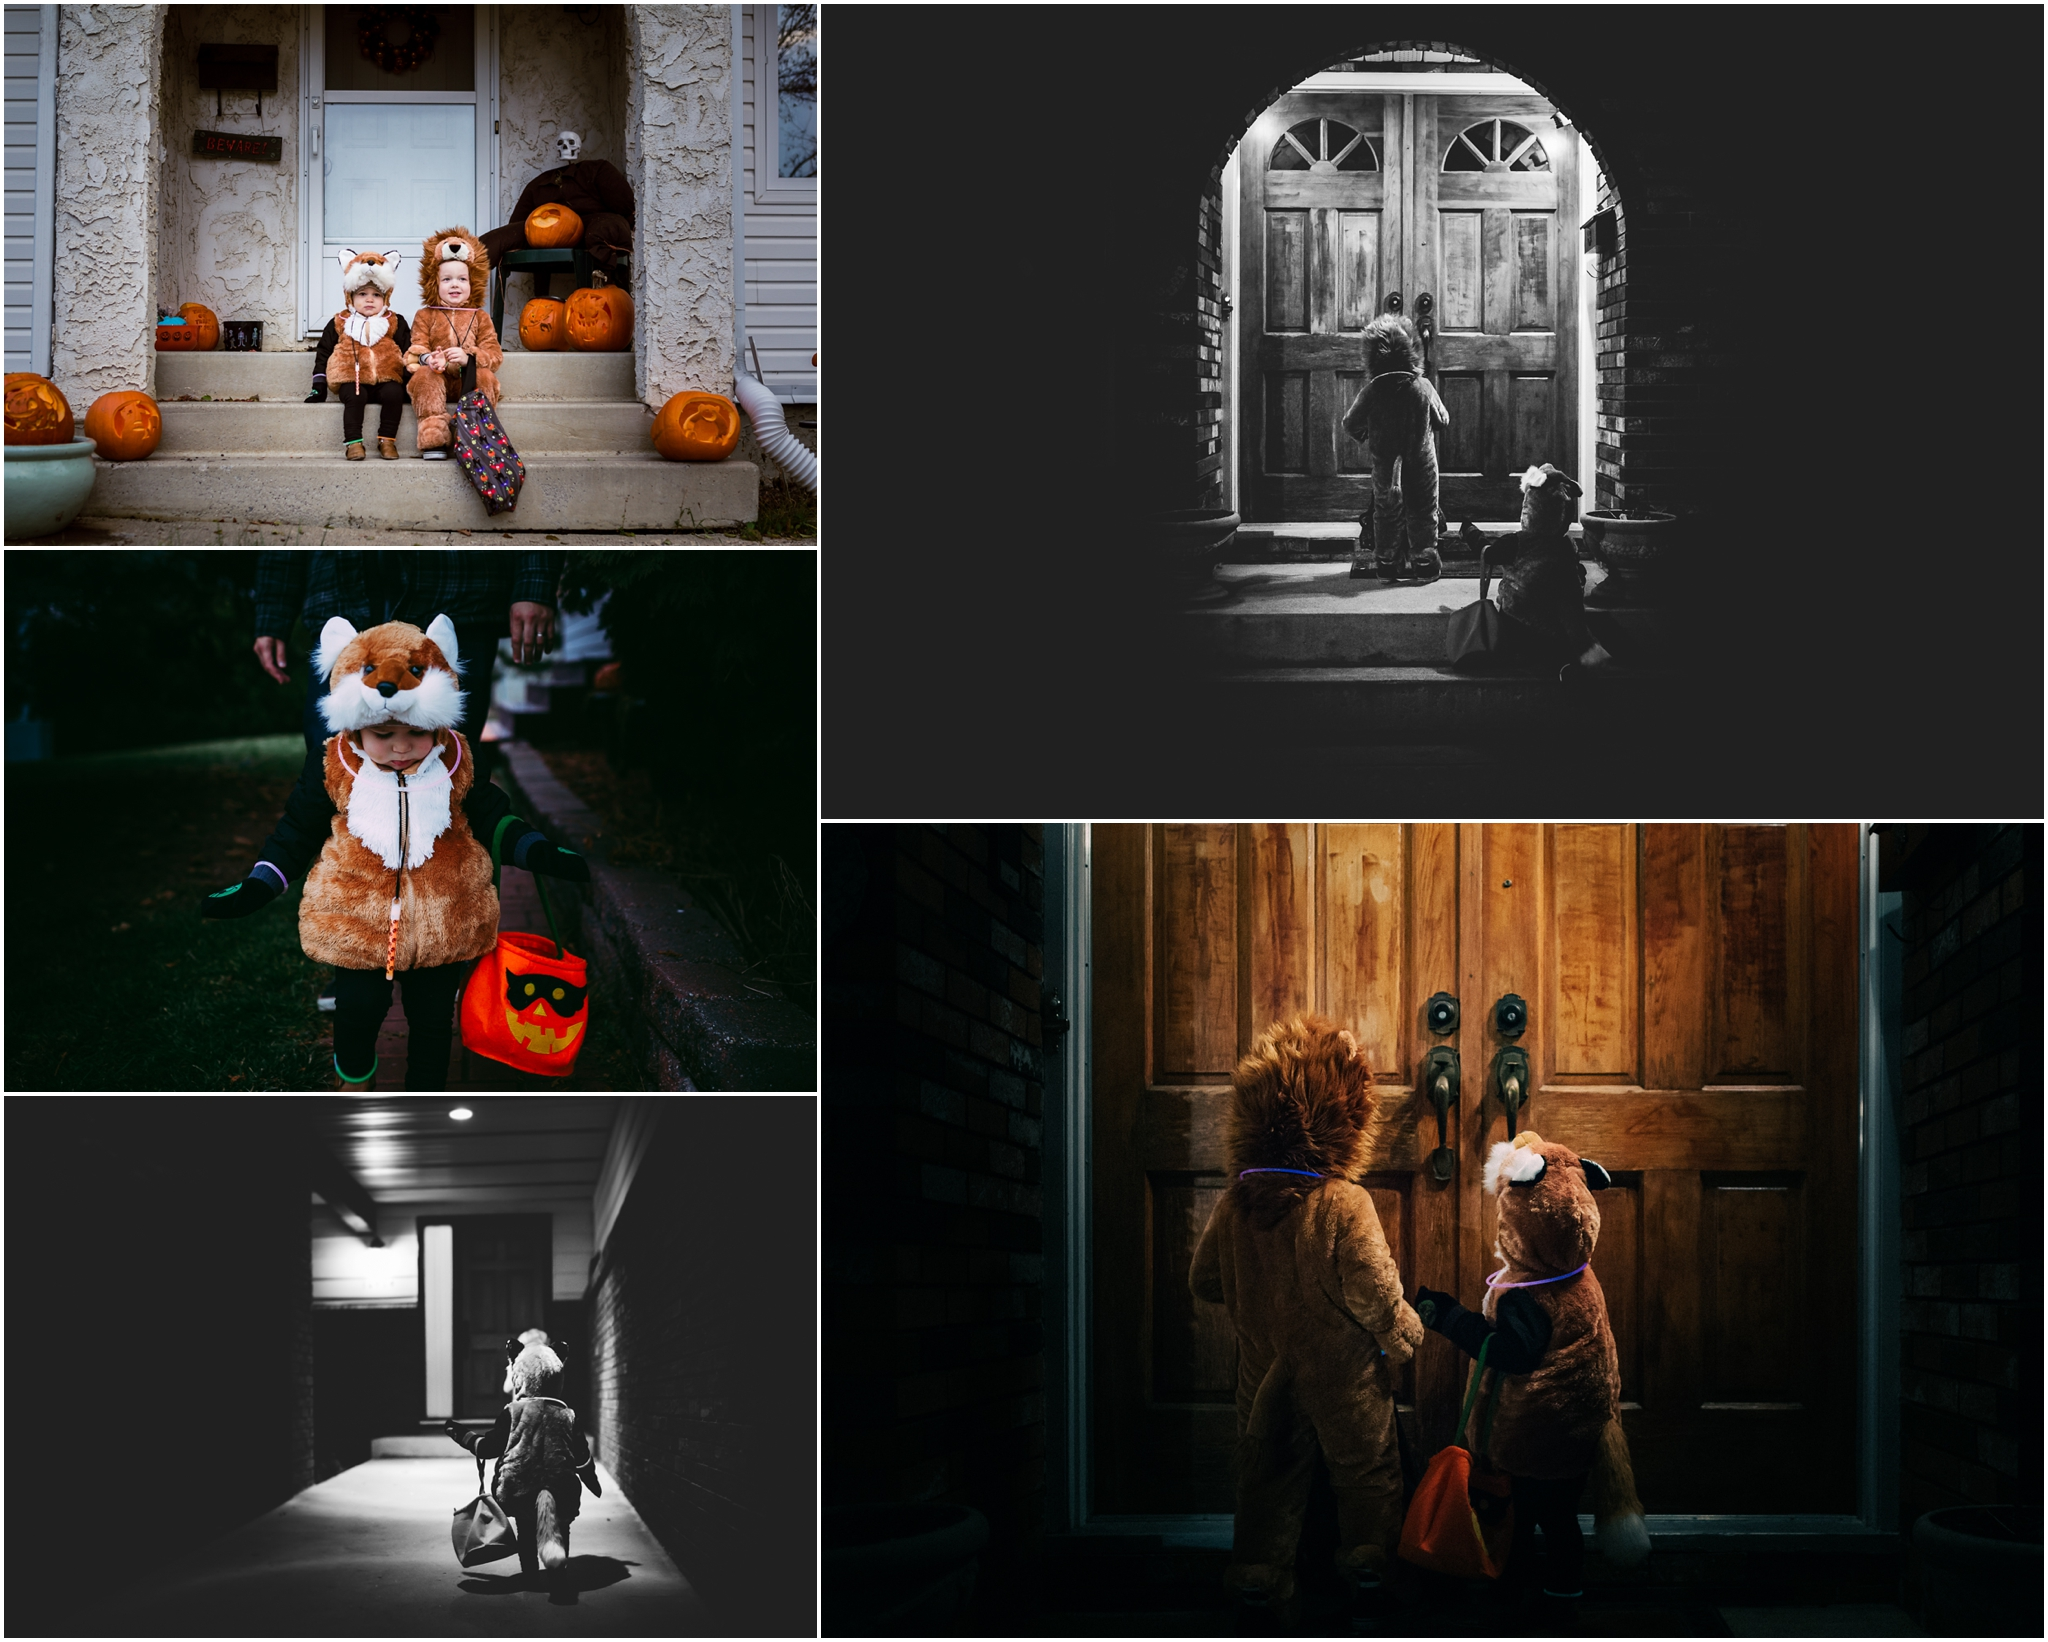 Edmonton Documentary Photographer - Best of 2016 - Halloween - Trick or Treat - Candy - Brothers - YEG - Costumes